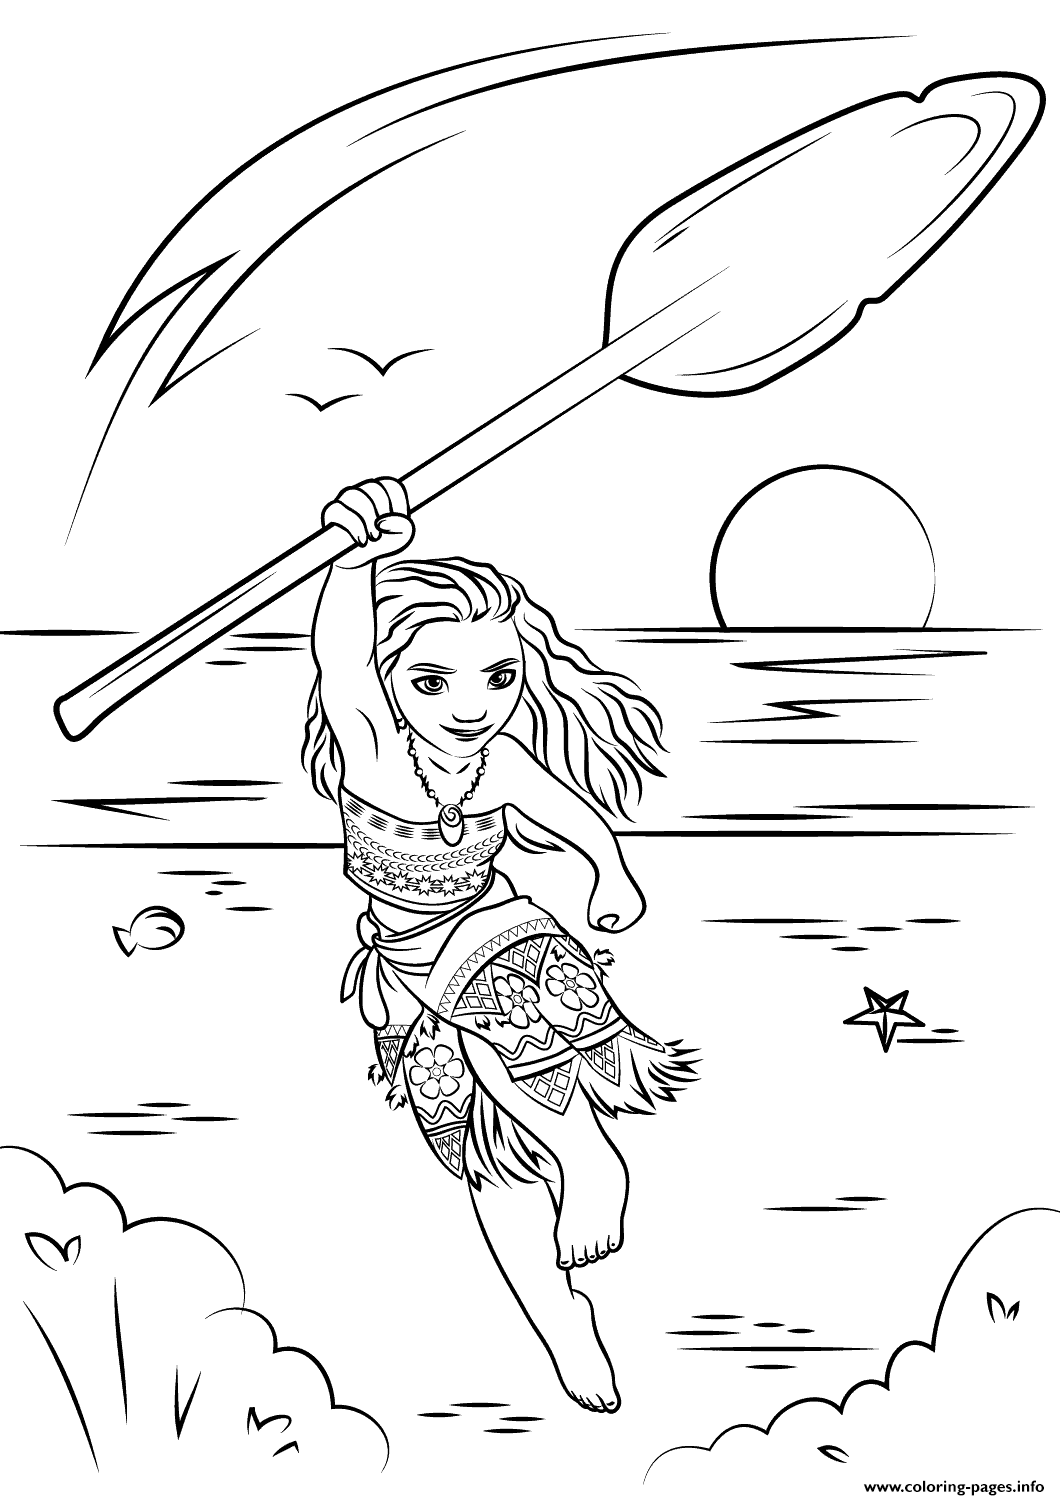 disney moana coloring pages coloring pictures of moana coloring pages disney moana pages coloring